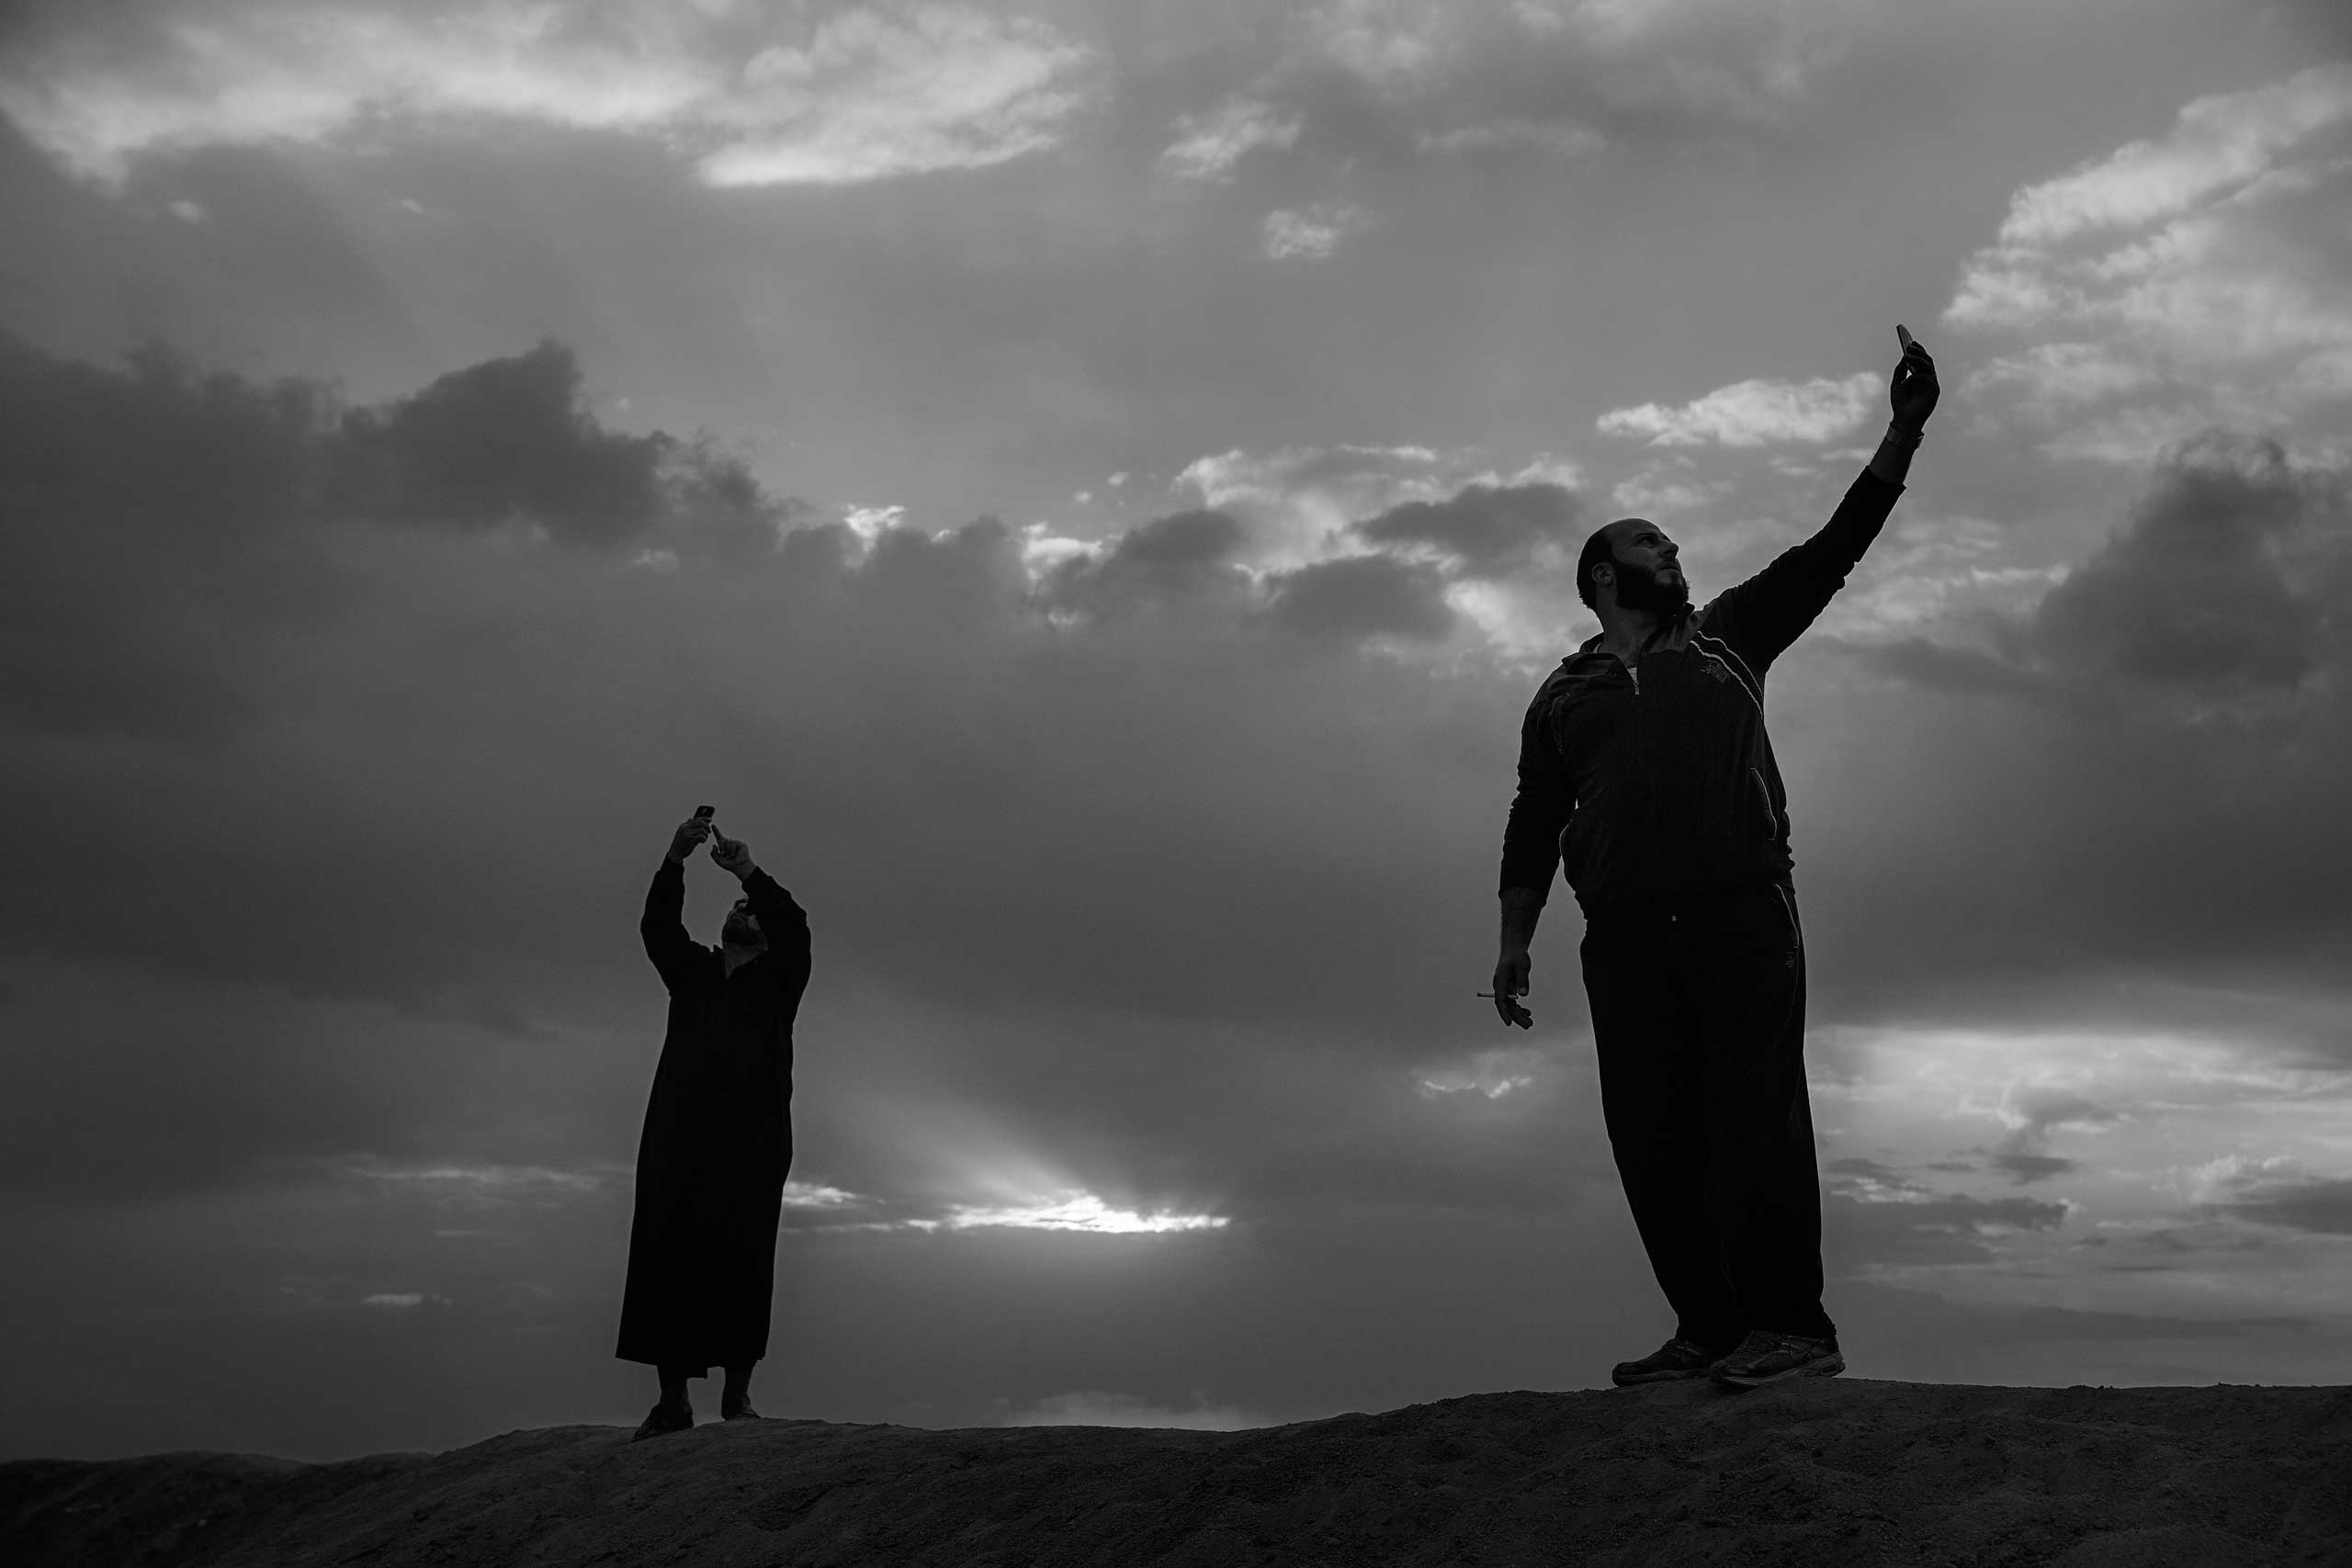 December 2013. Za'atari refugee camp, Jordan. Residents of the camp search for a clear cell-phone signal to call Syria.  From  Syrian Refugees by James Nachtwey